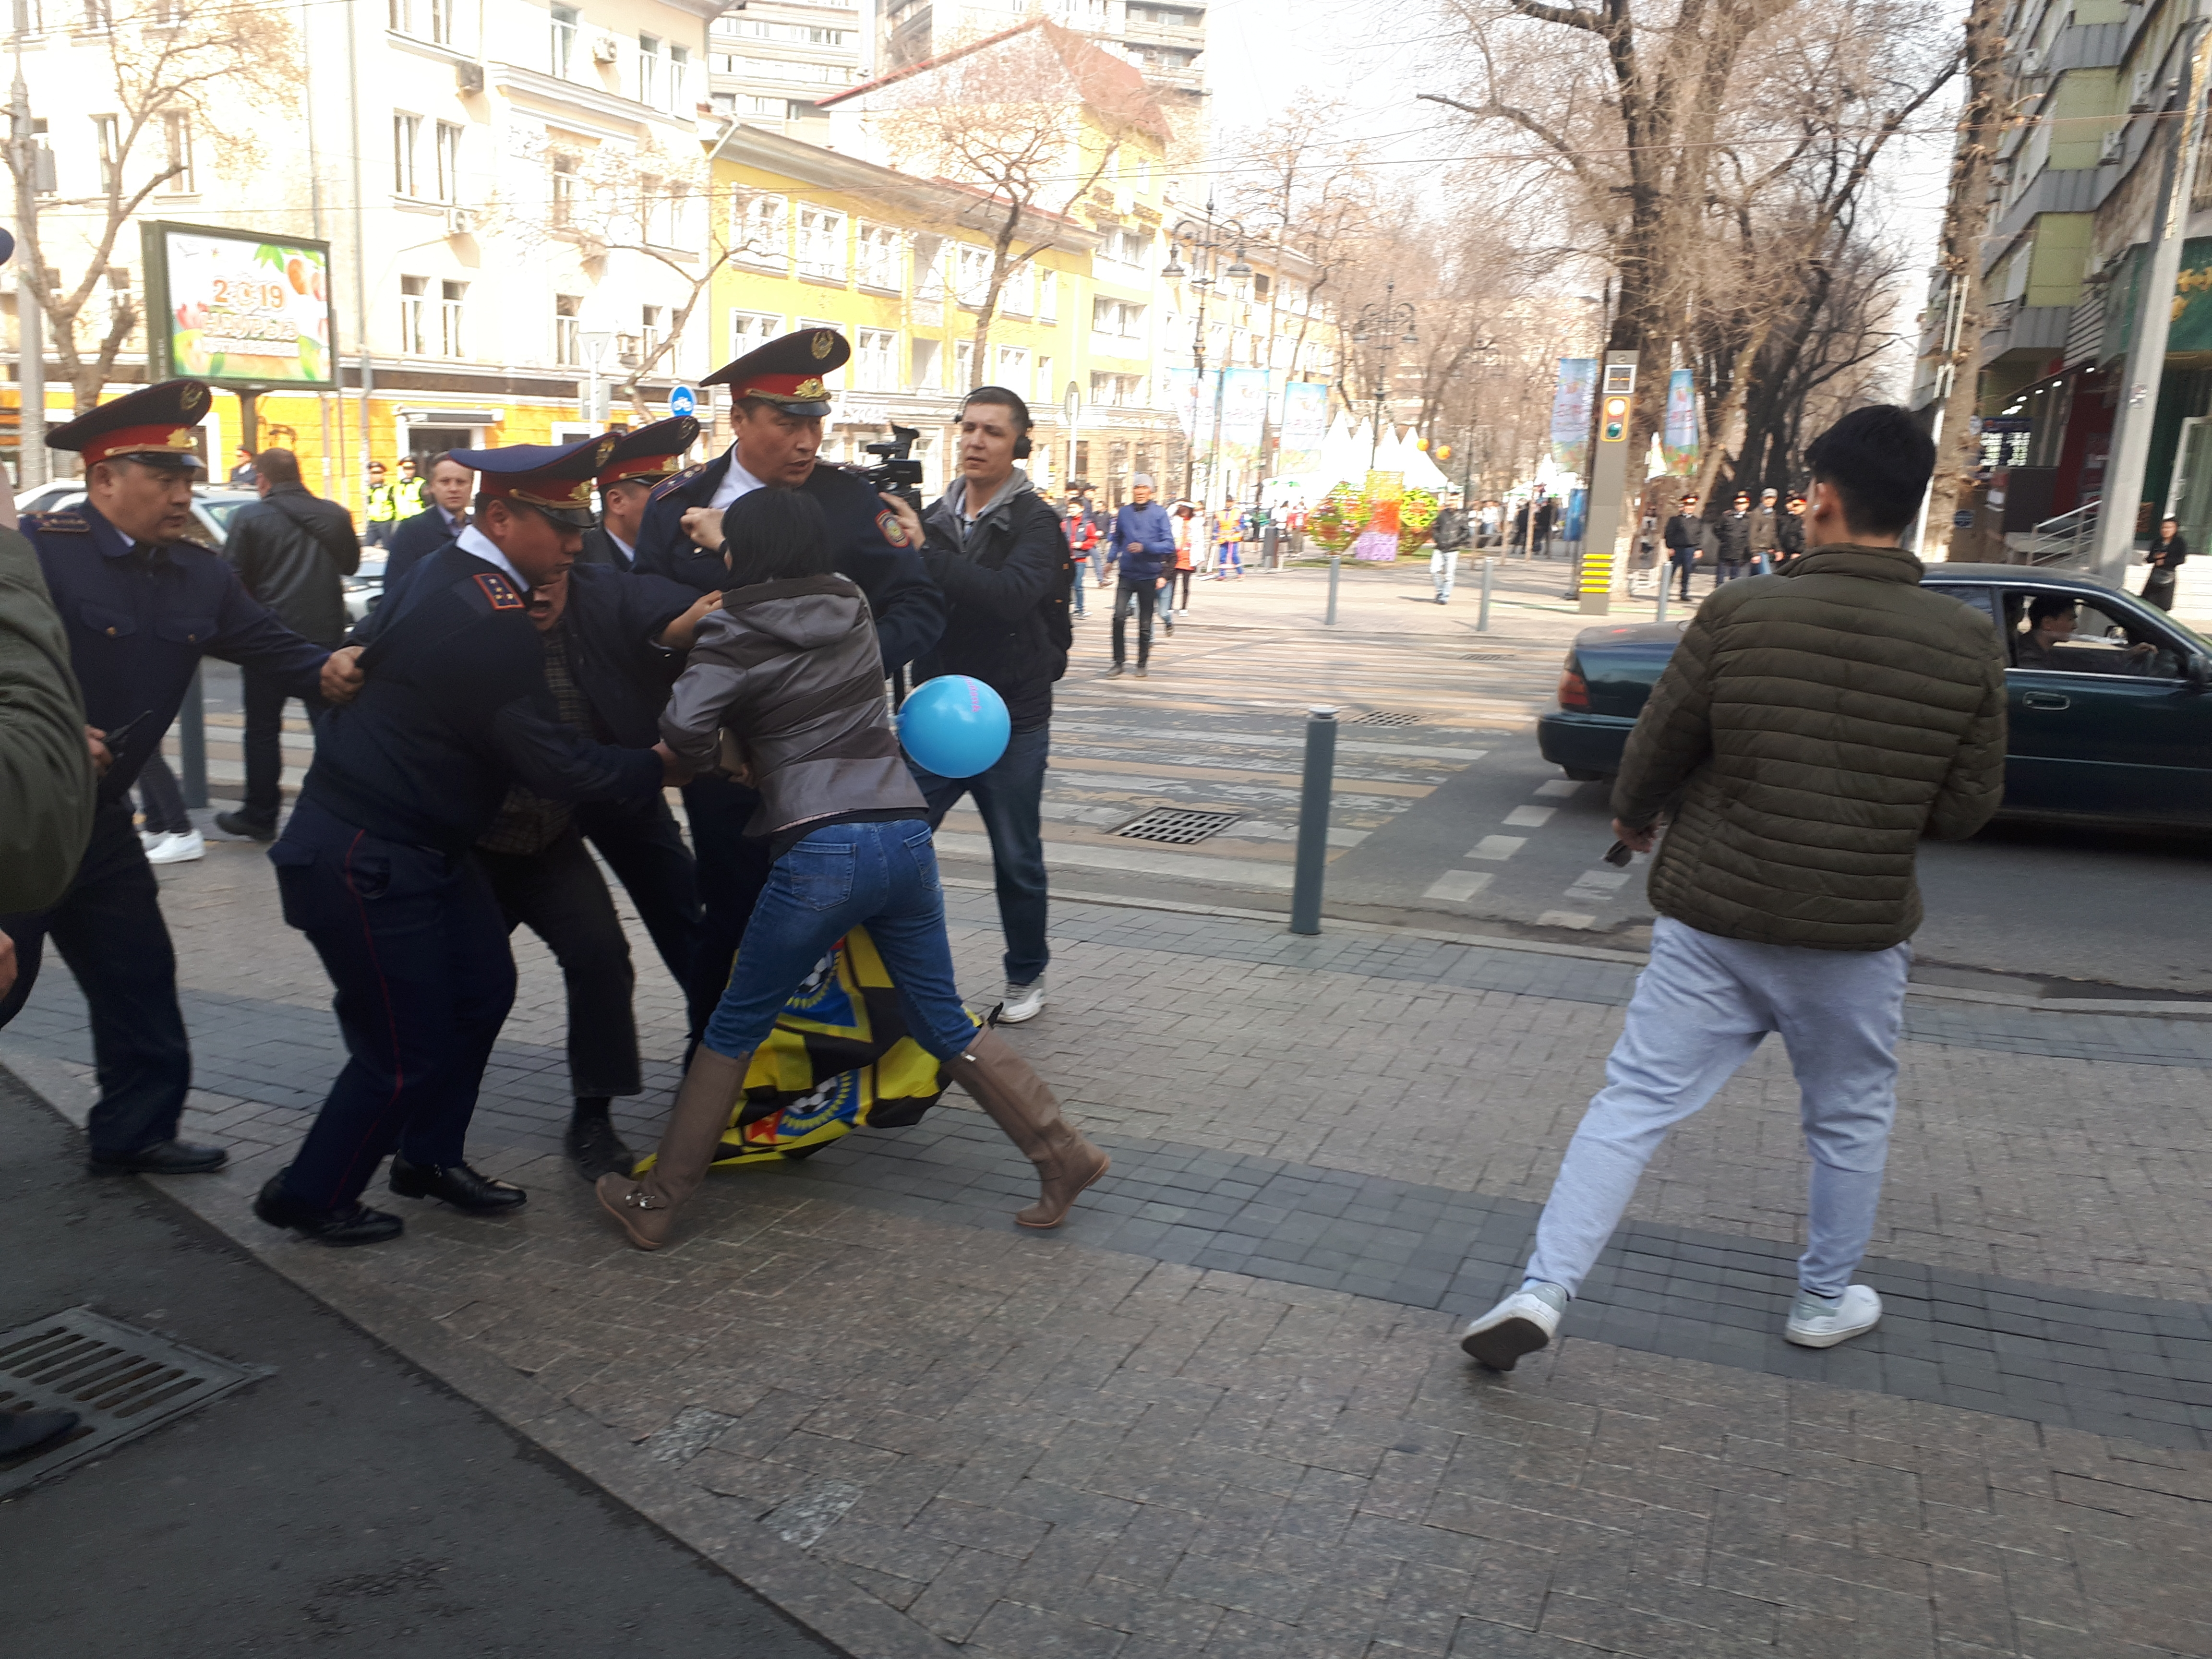 It's raining policemen: A female demonstrator and her blue balloon are dragged away from a demo in downtown Almaty. (Photo: Joanna Lillis)